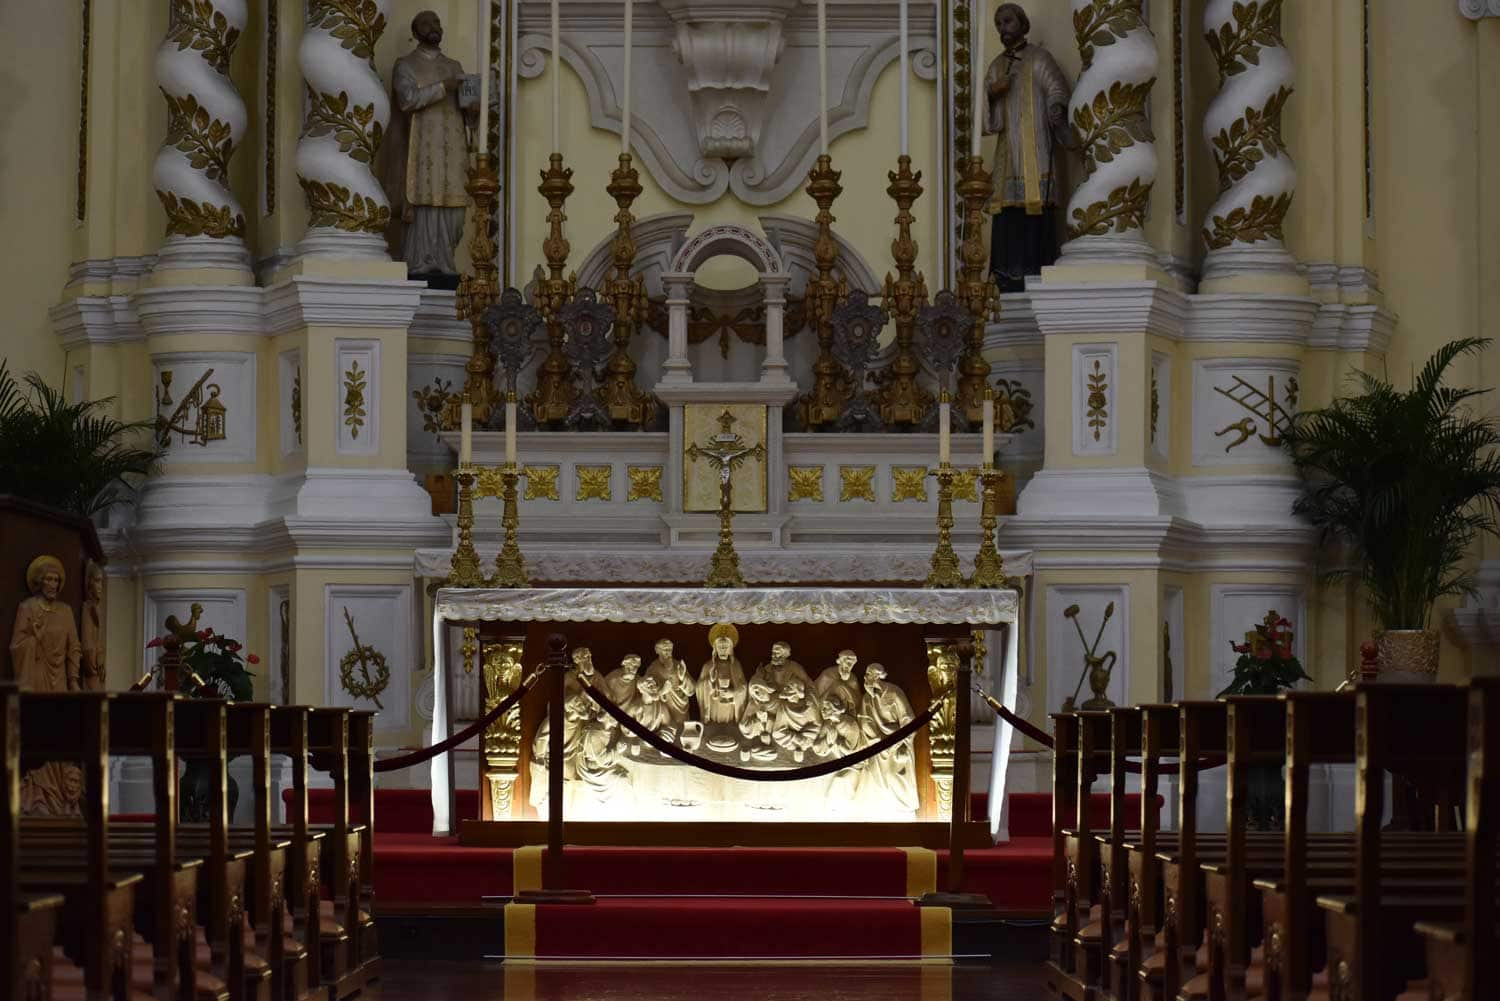 St. Josephs Church altar